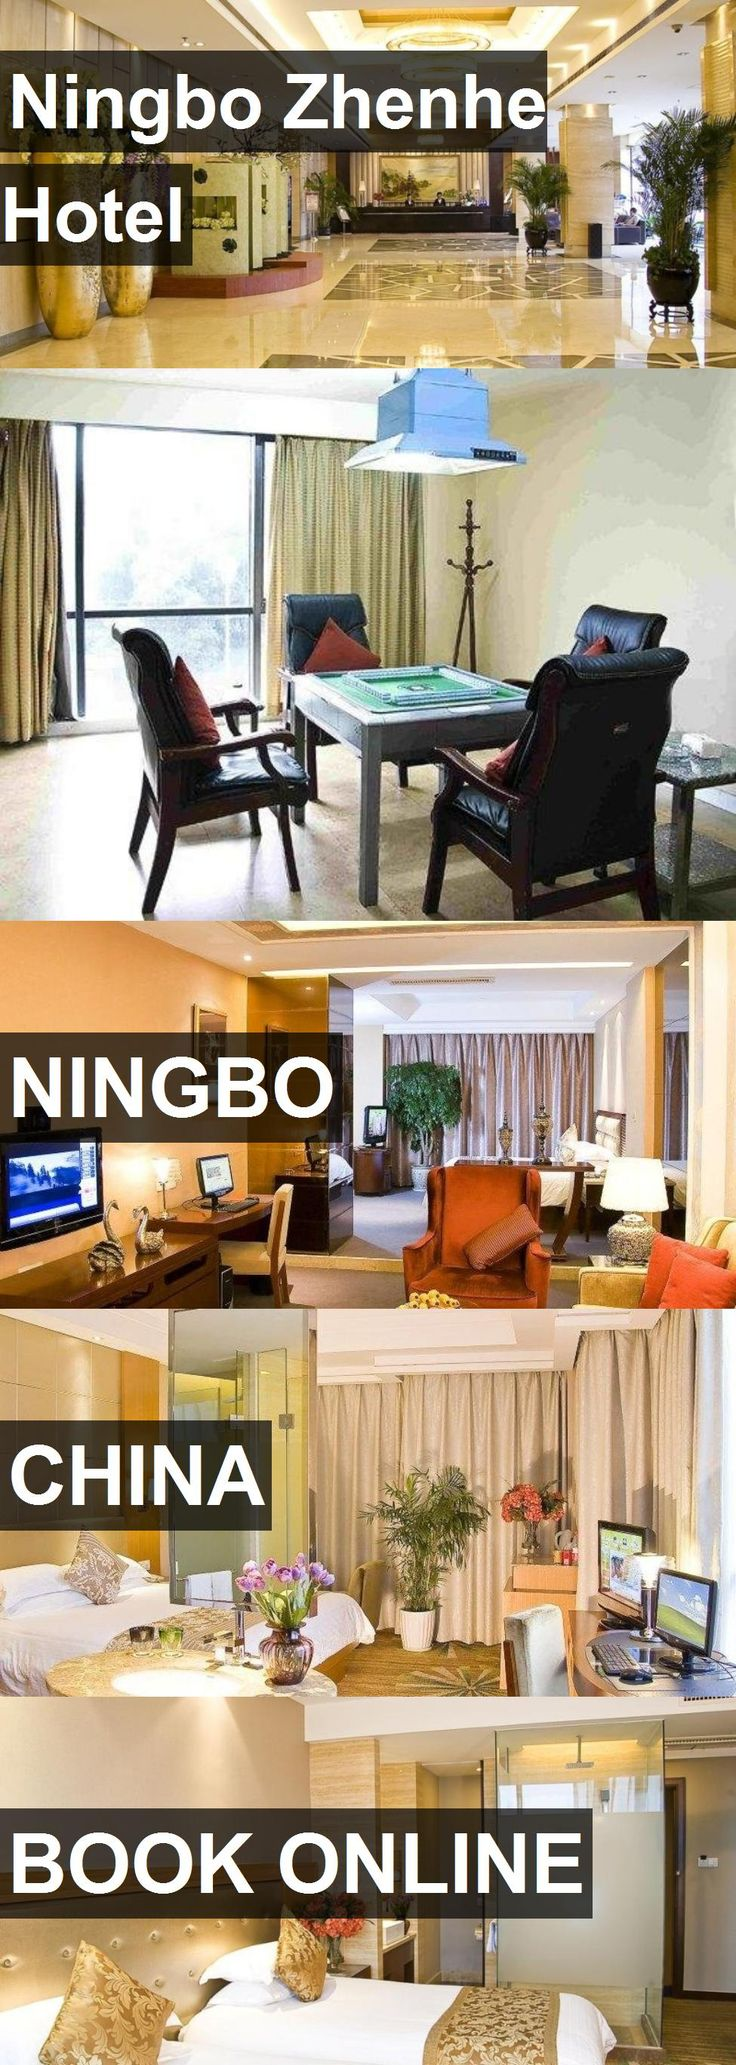 Ningbo Zhenhe Hotel in Ningbo, China. For more information, photos, reviews and best prices please follow the link. #China #Ningbo #travel #vacation #hotel